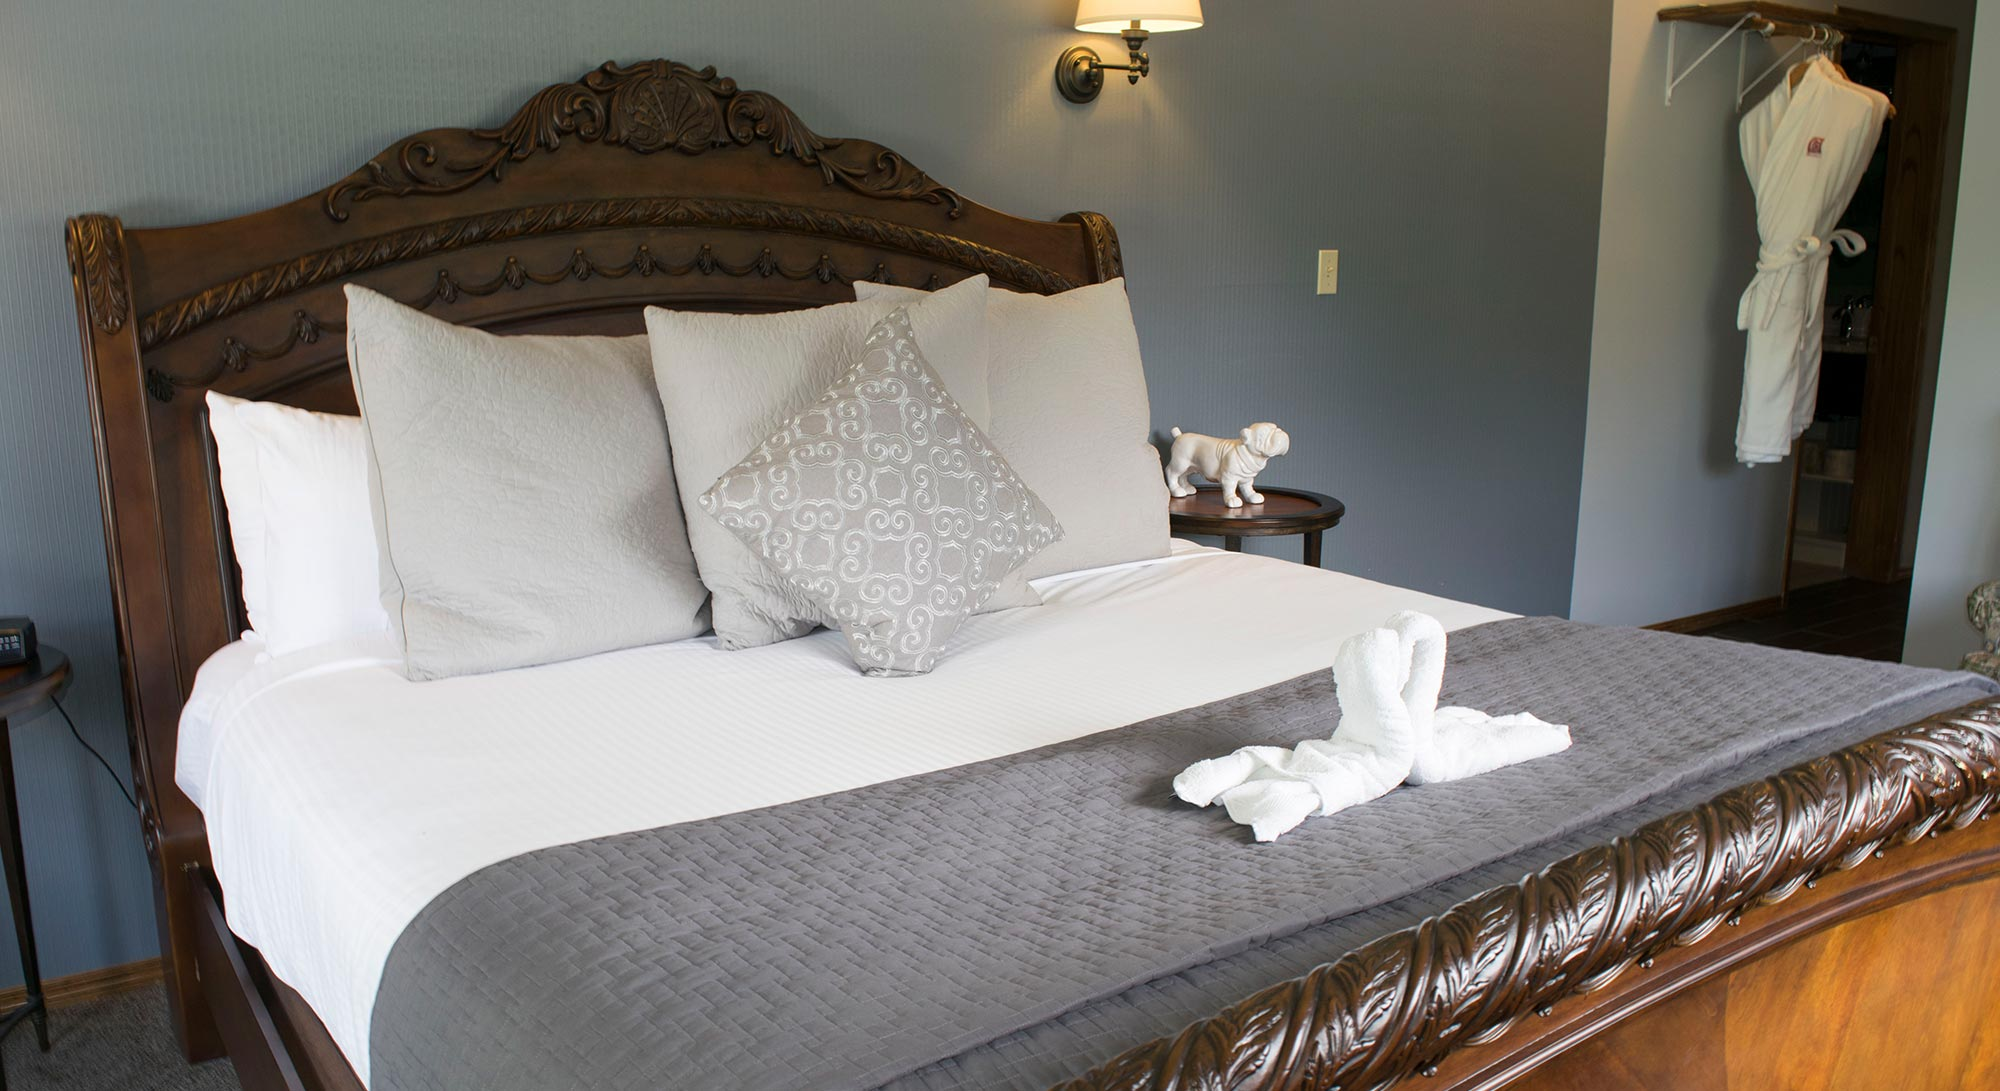 Newly renovated Elizabeth room at the Gerogetown Inn.